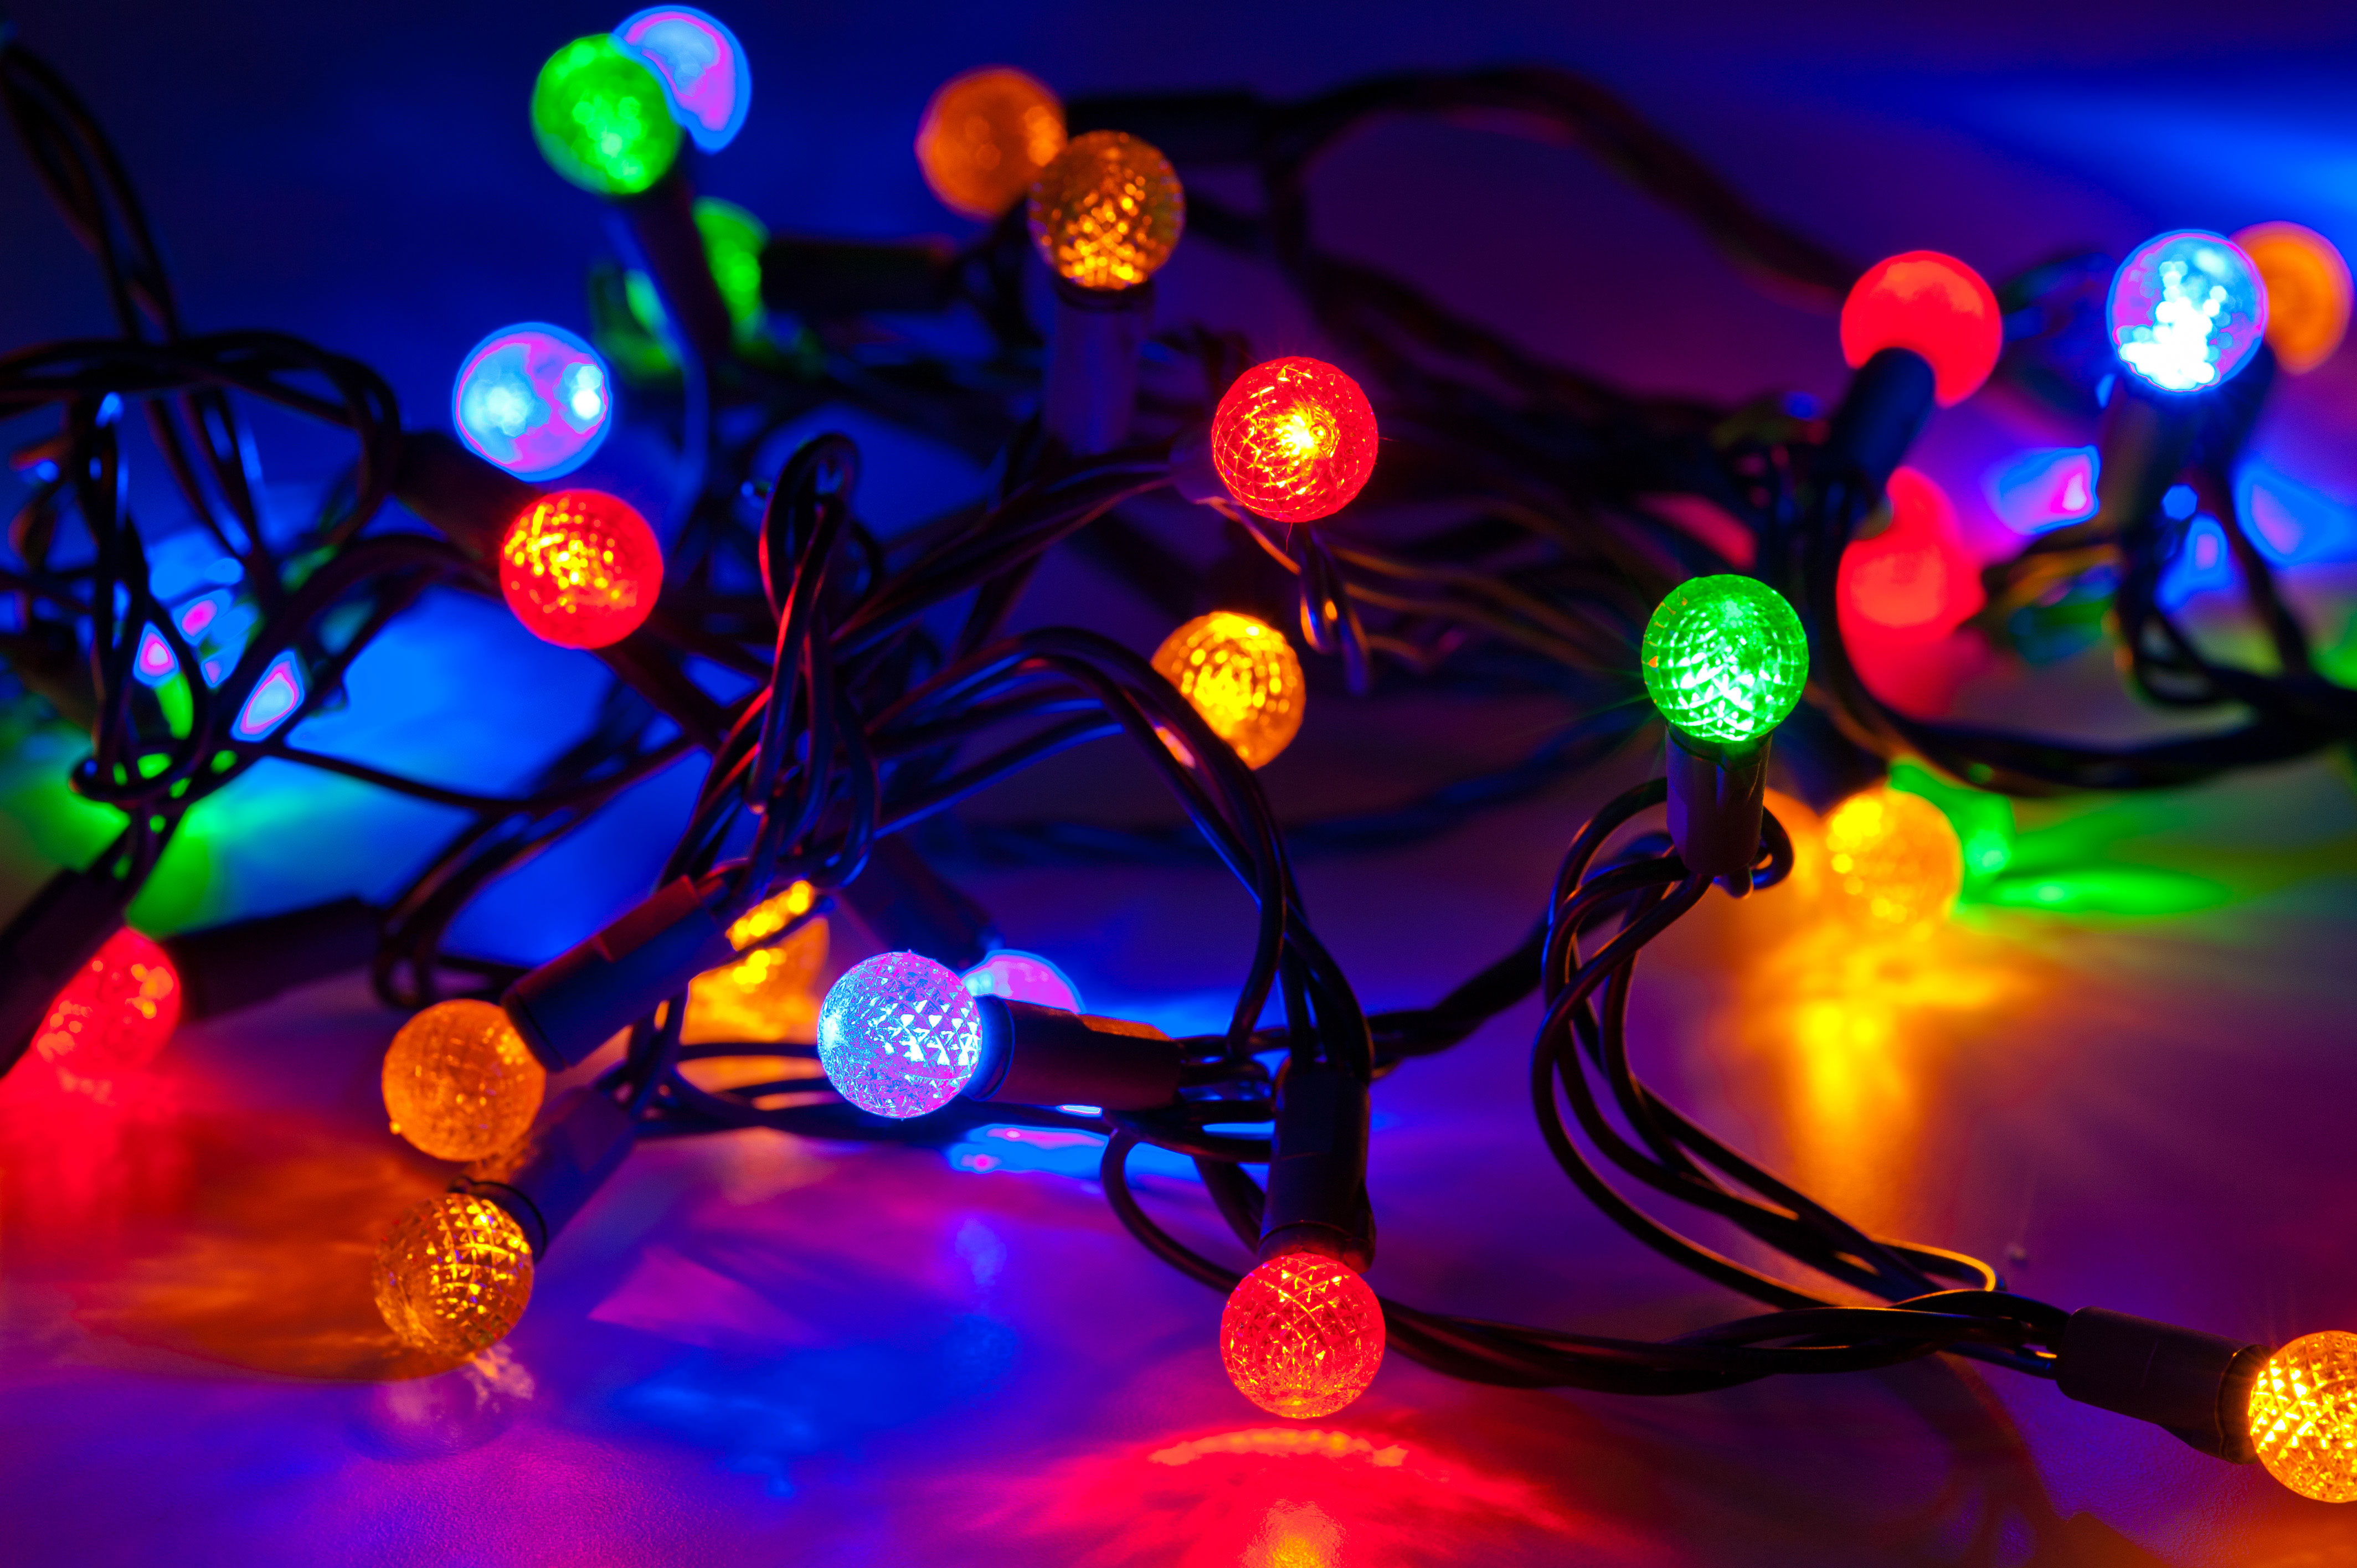 article merry small mental lights istock and lighting floss light about bright christmas facts